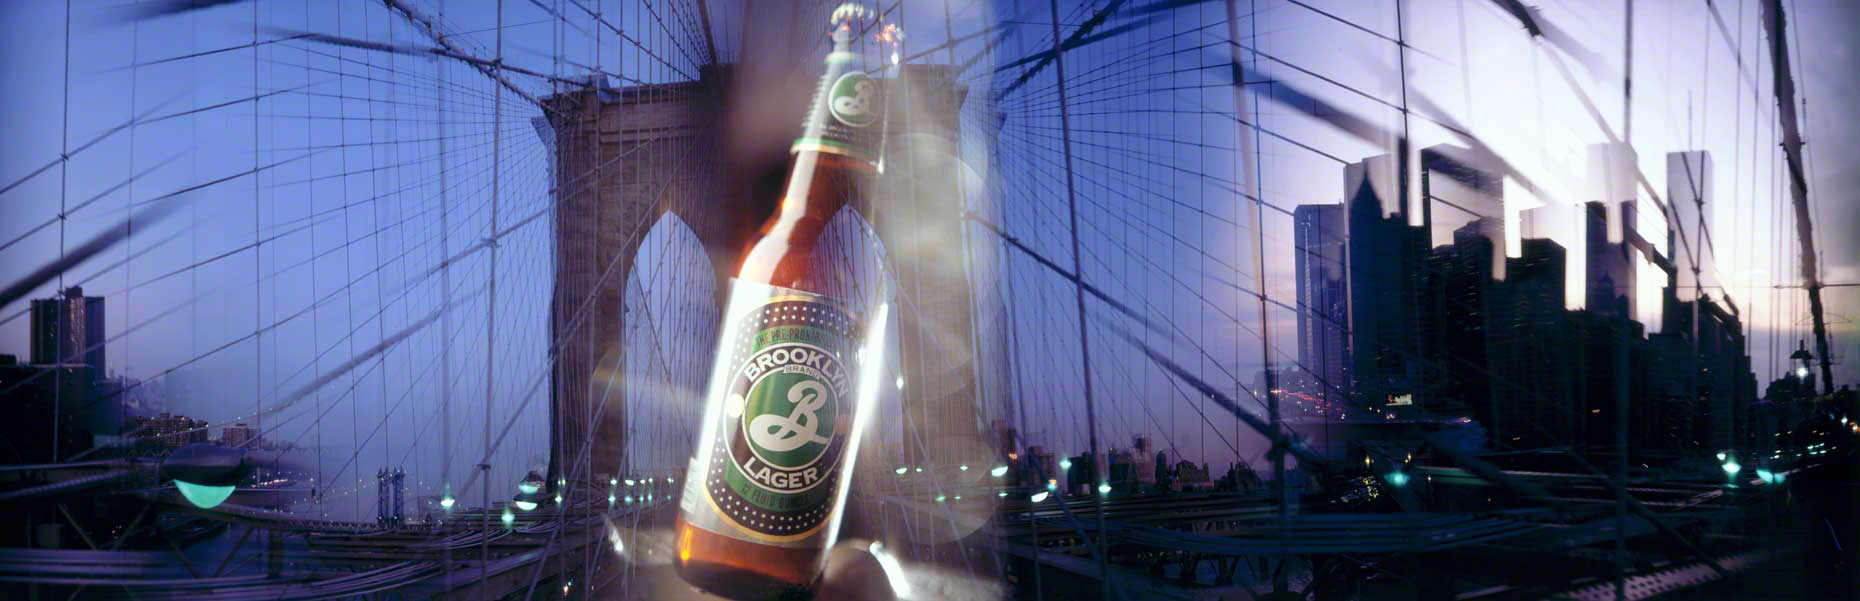 Brooklyn Lager - Brooklyn Bridge